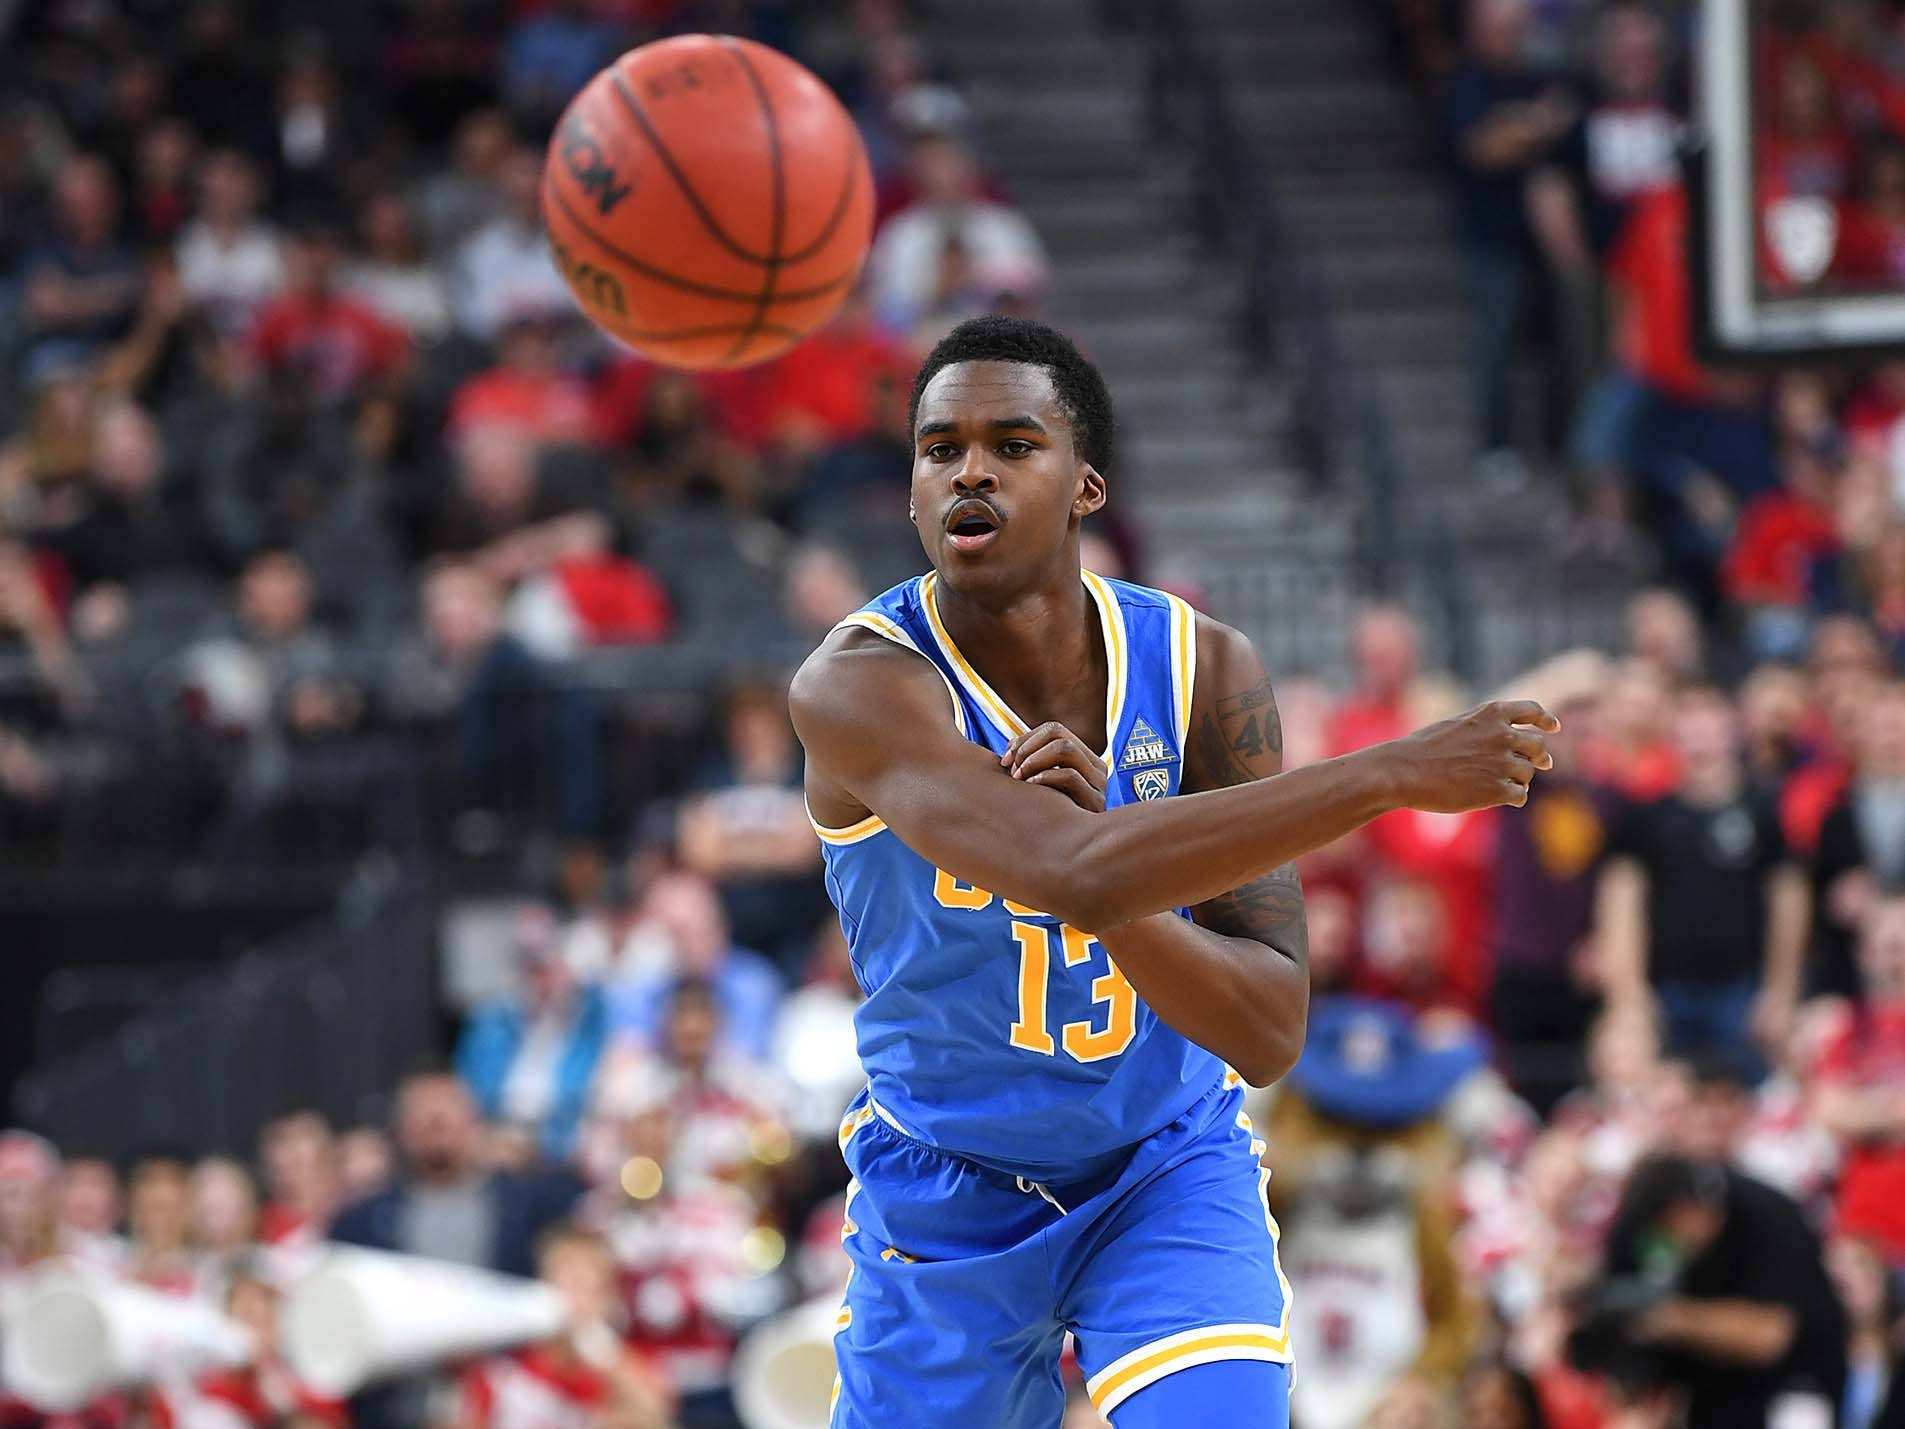 No. 20 UCLA (21-12 in 2017-18).